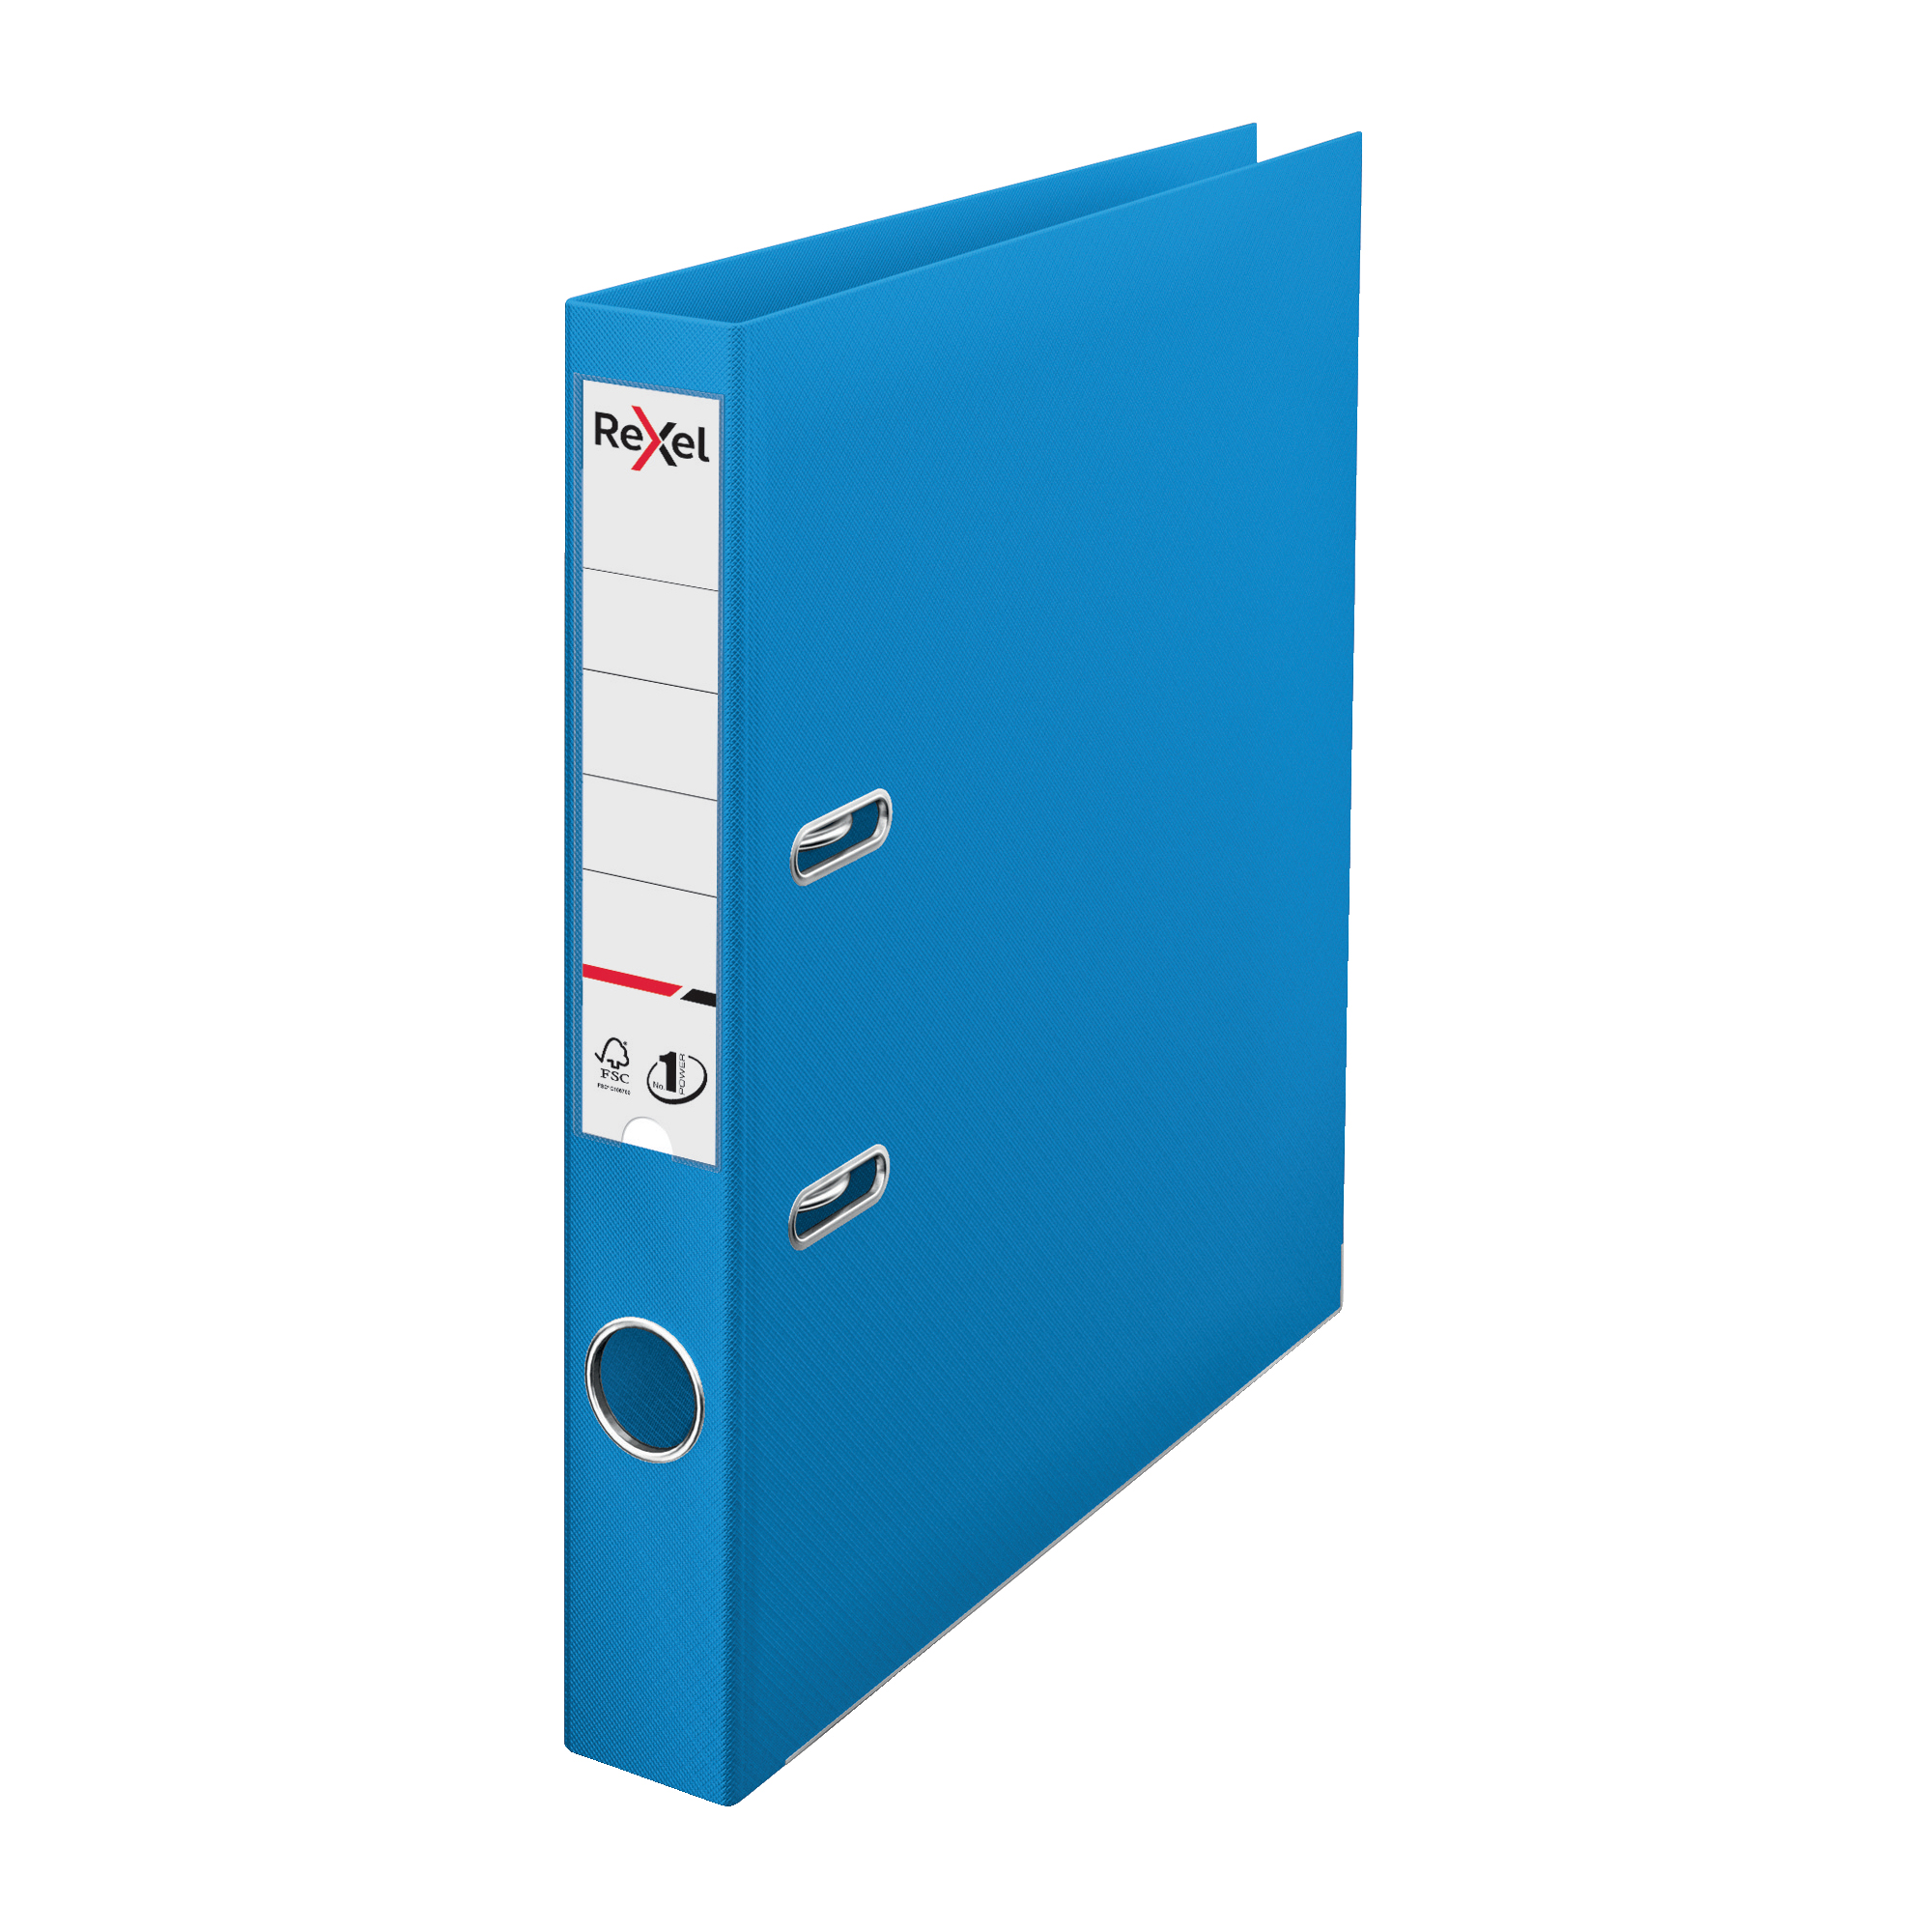 Lever arch file Rexel Choices LArch File PP 50mm A4 Blue Ref 2115507